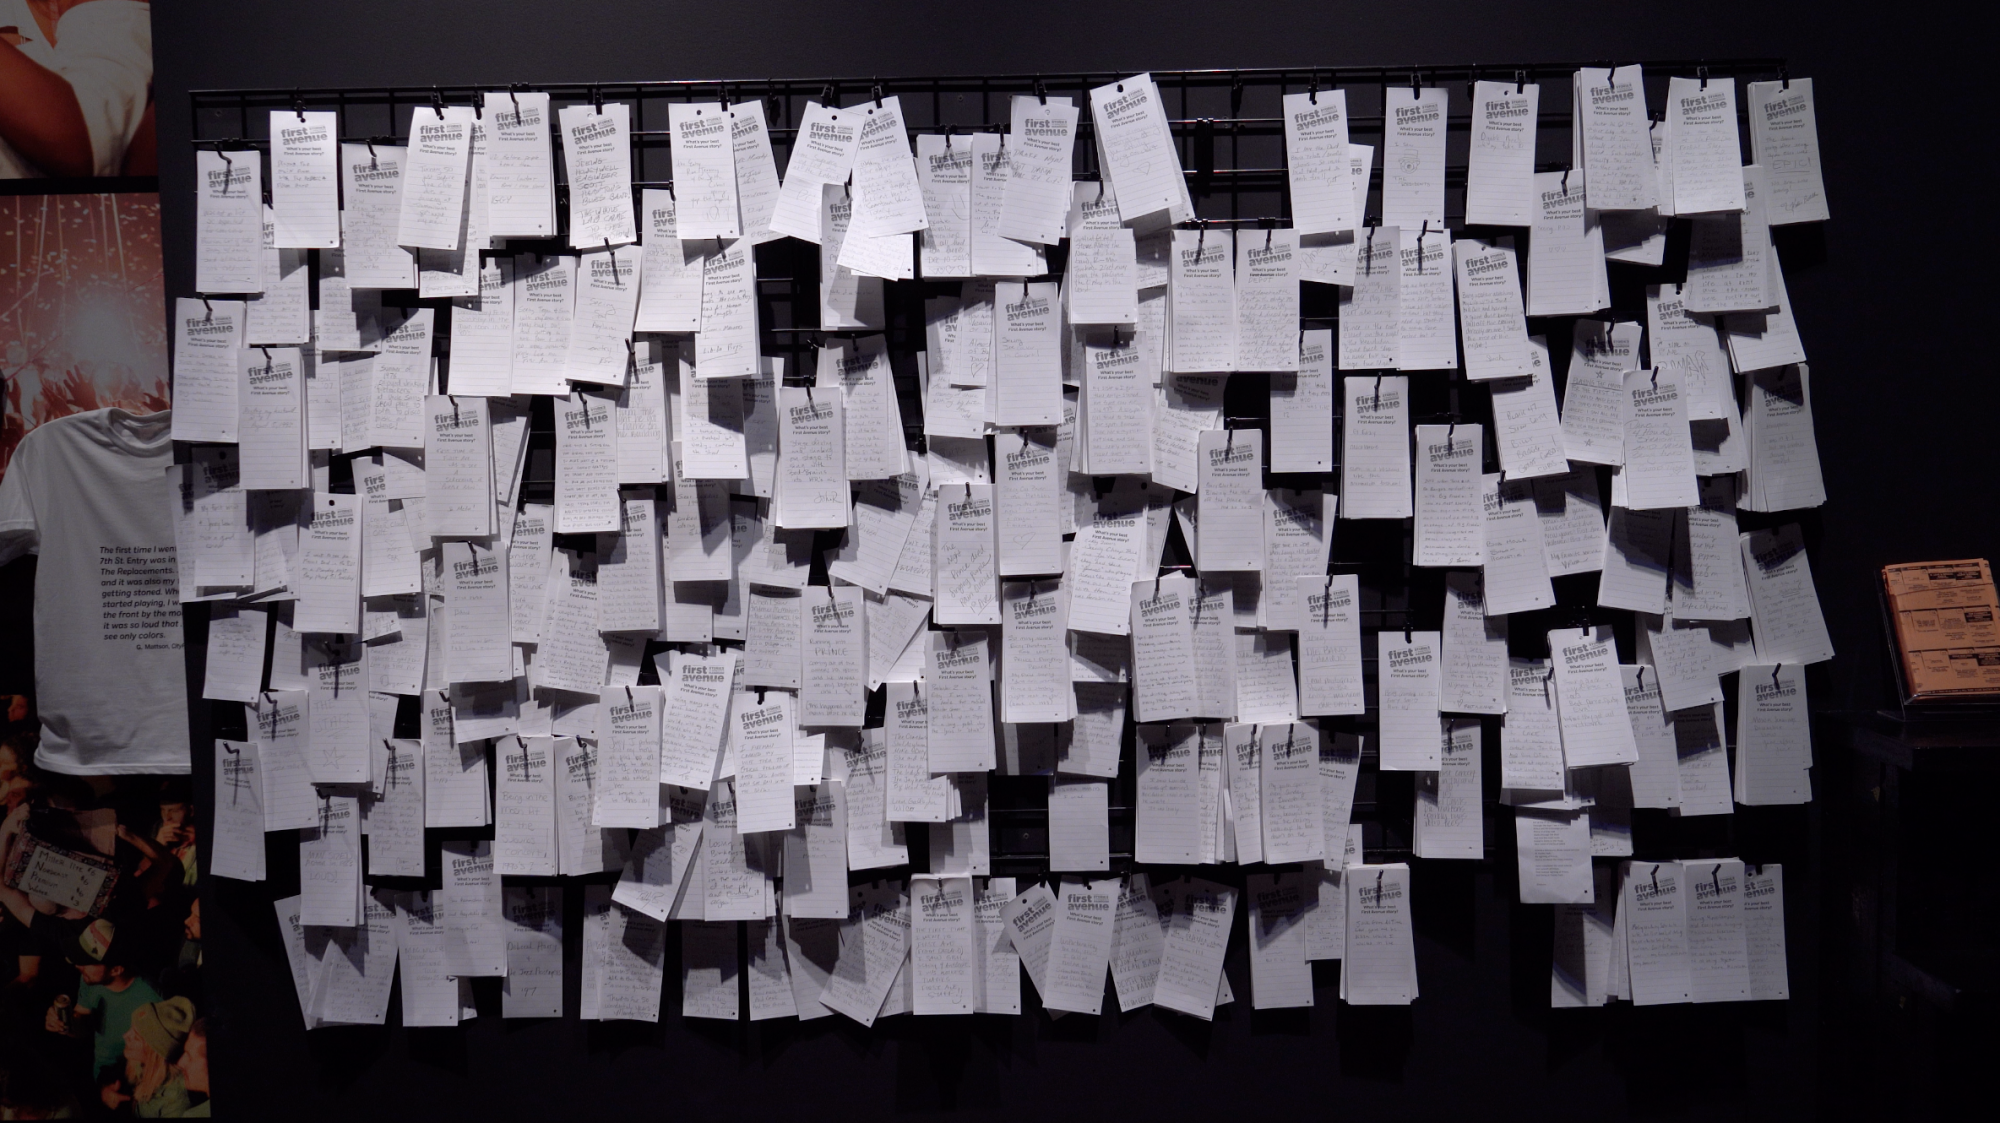 Comment cards on a wall.